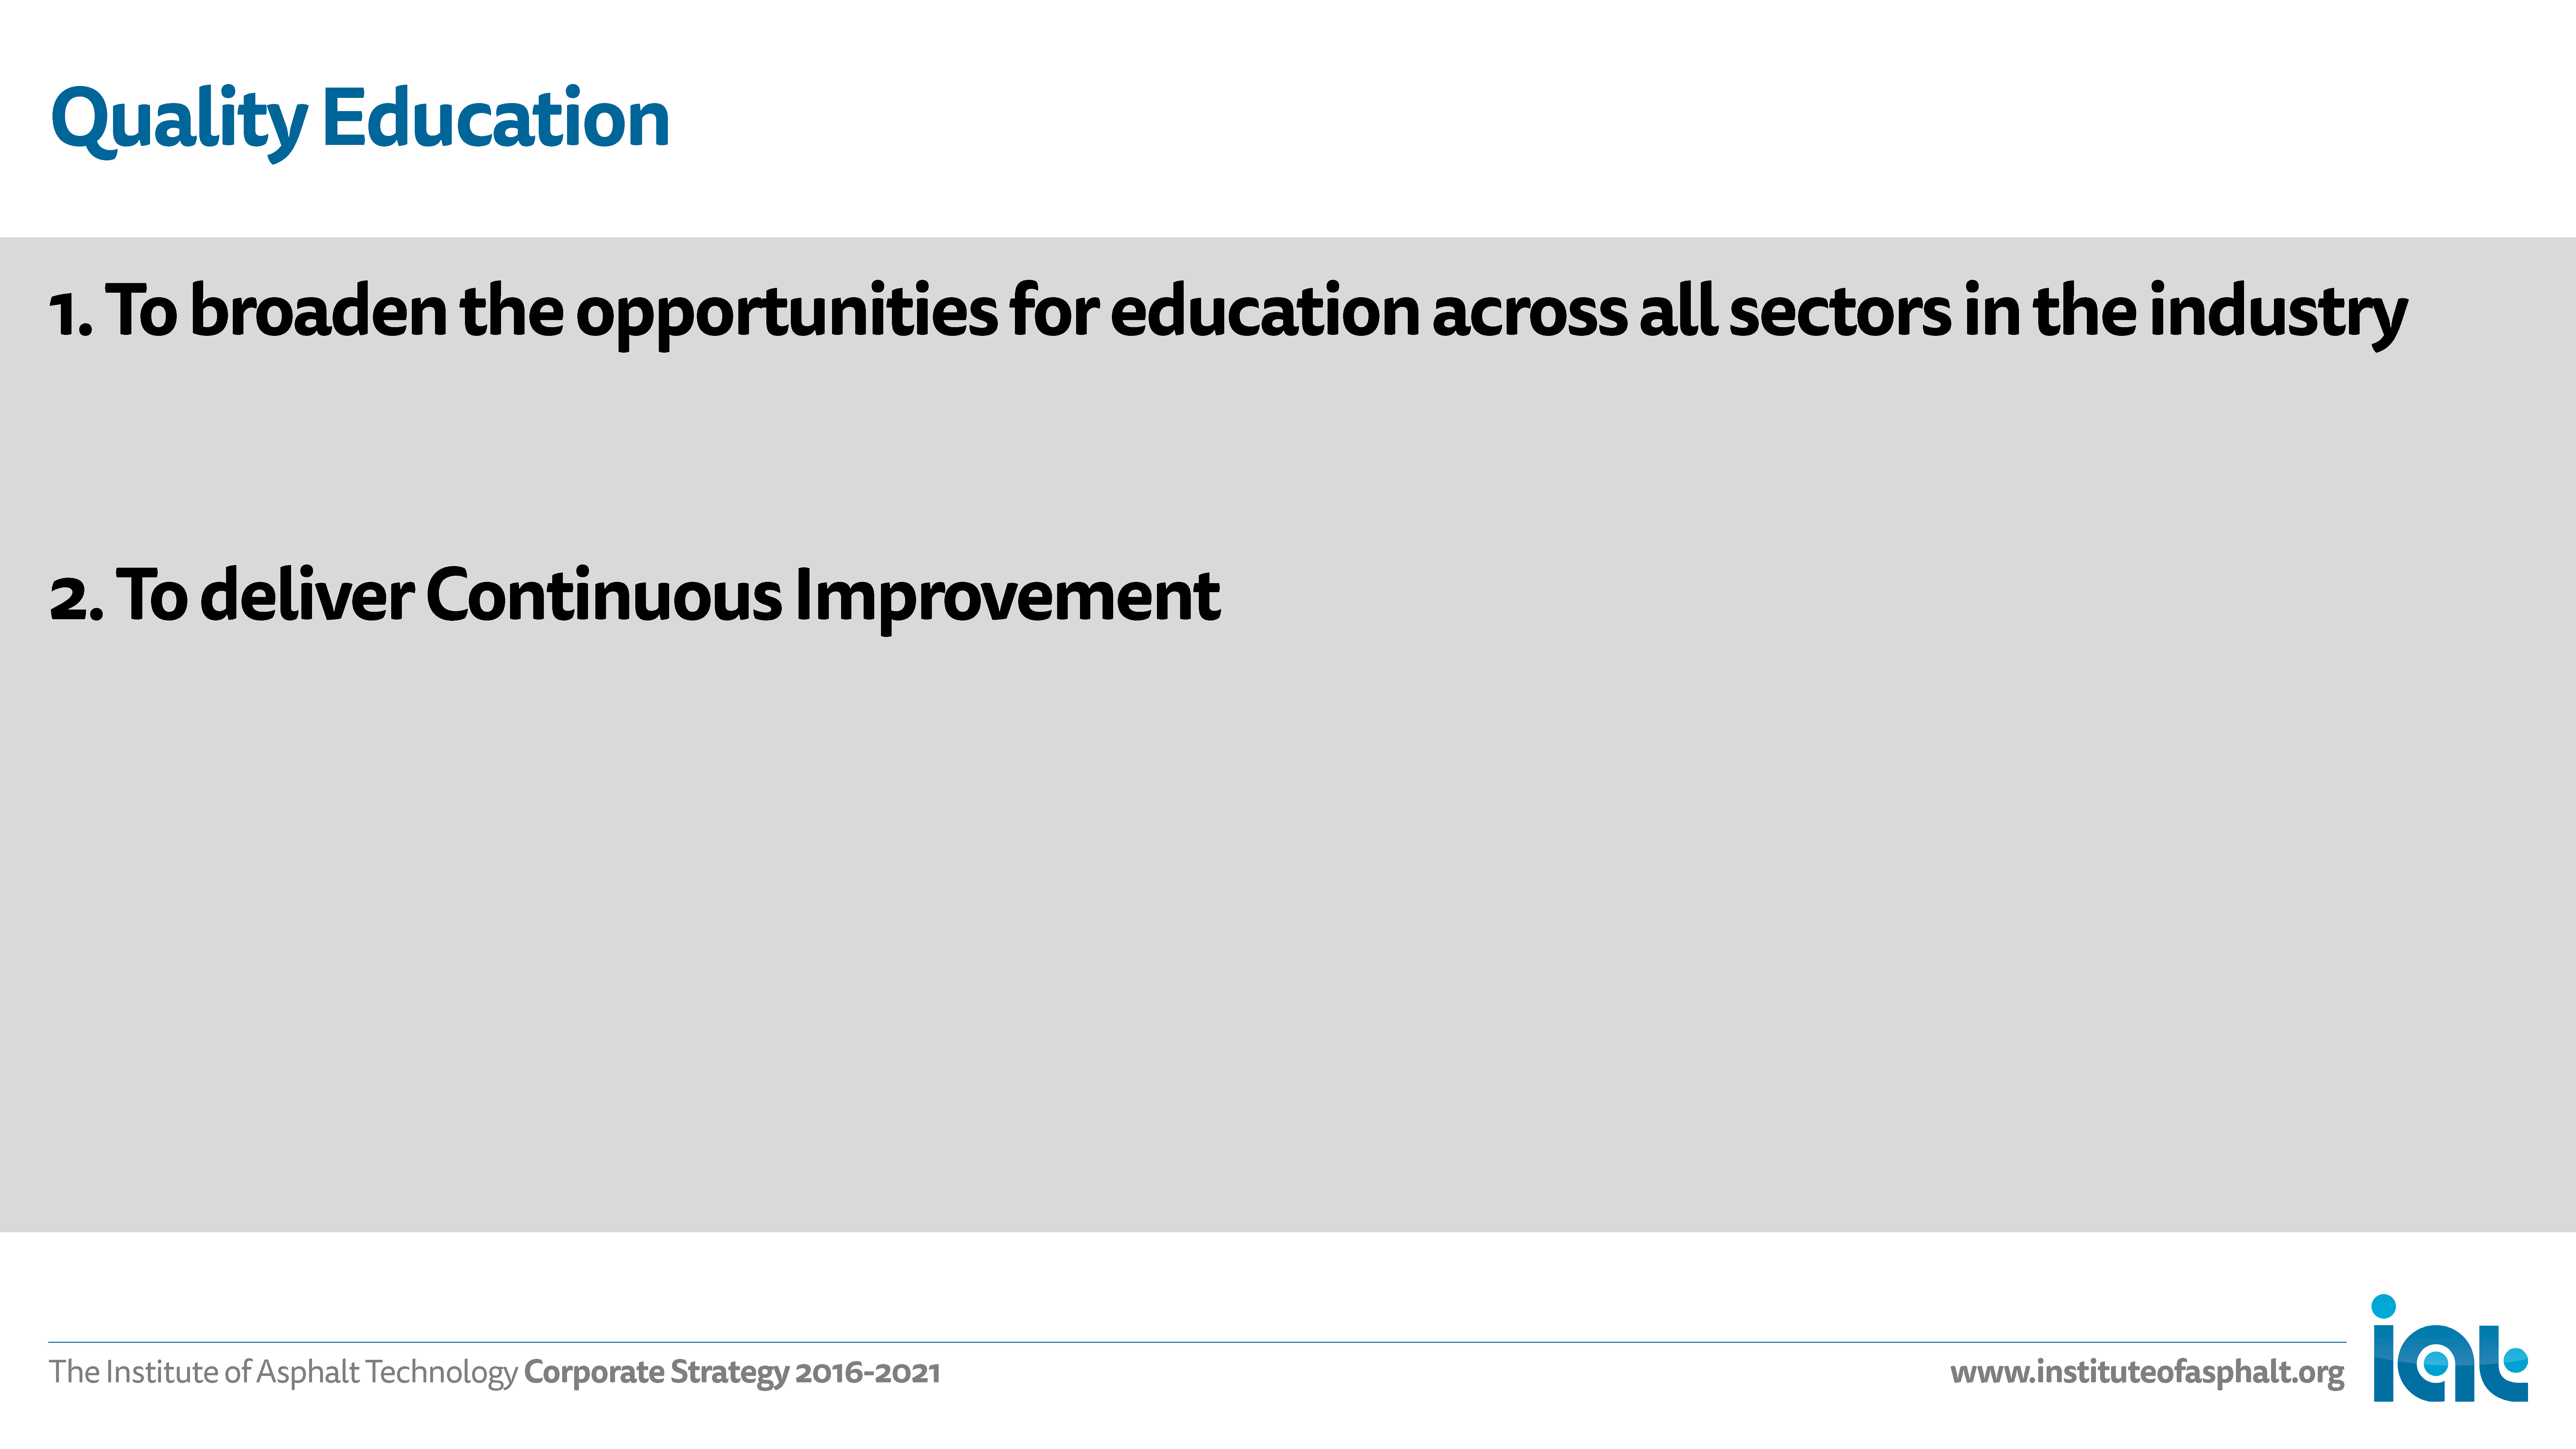 IAT Strategy, slide no. 7